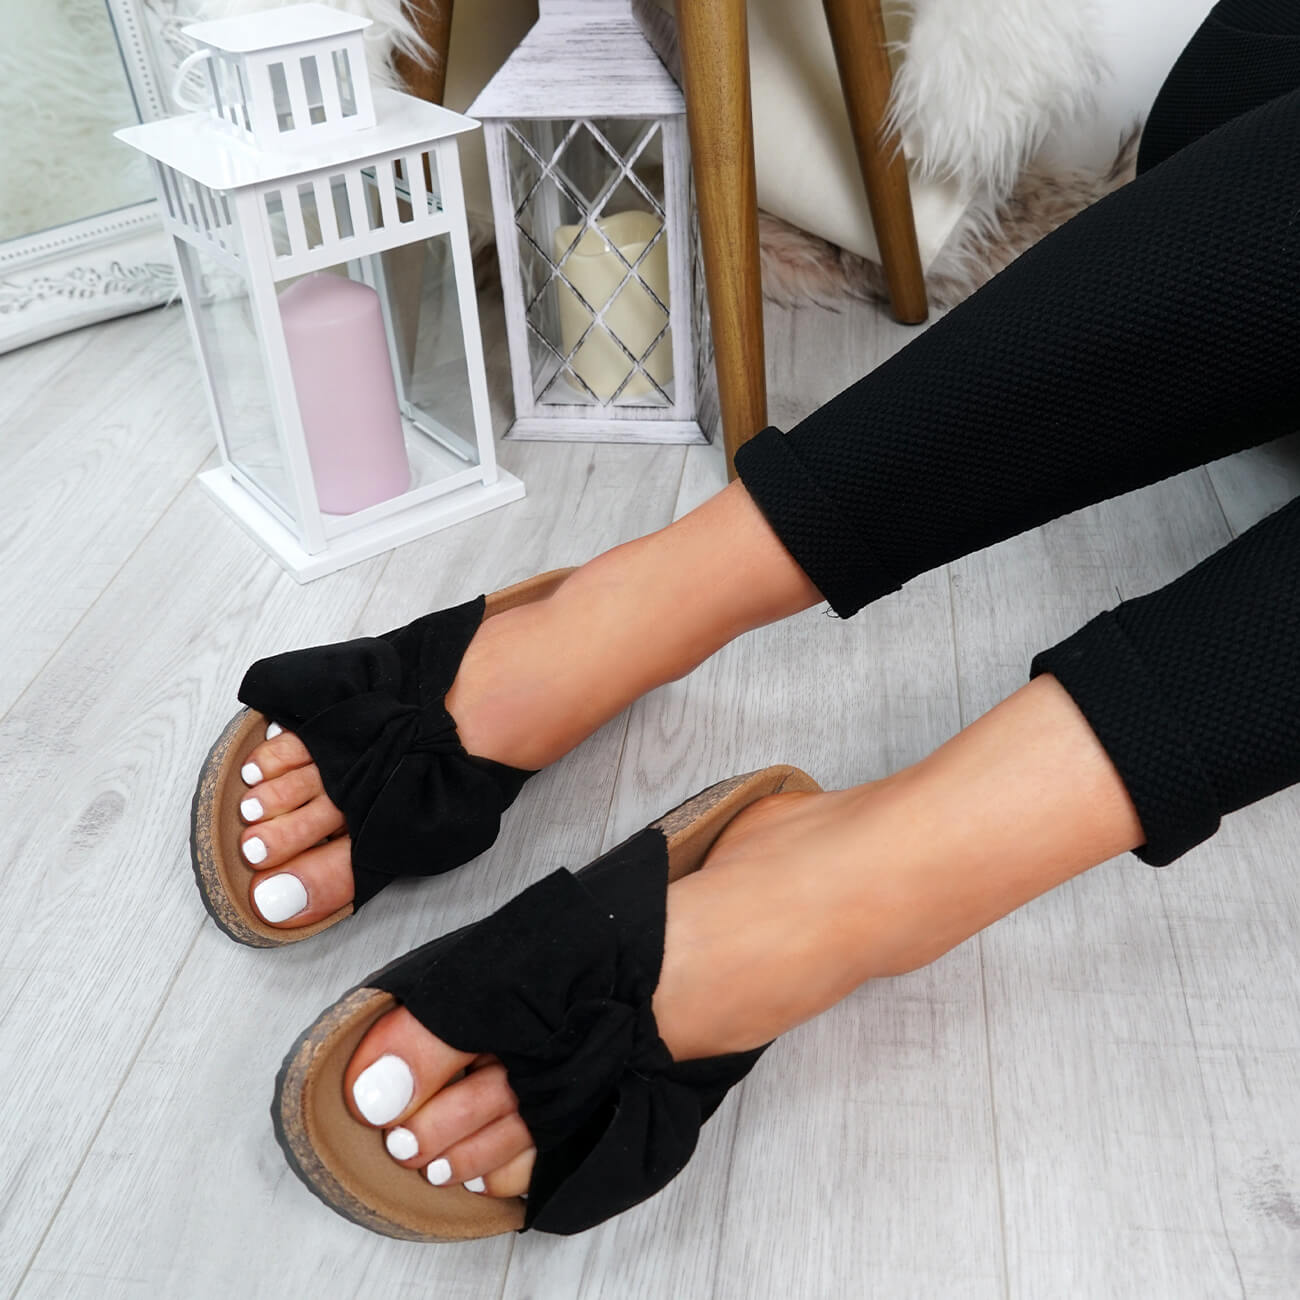 WOMENS-LADIES-SLIP-ON-FLAT-SANDALS-BOW-SLIDERS-SUMMER-CASUAL-SHOES-SIZE thumbnail 13